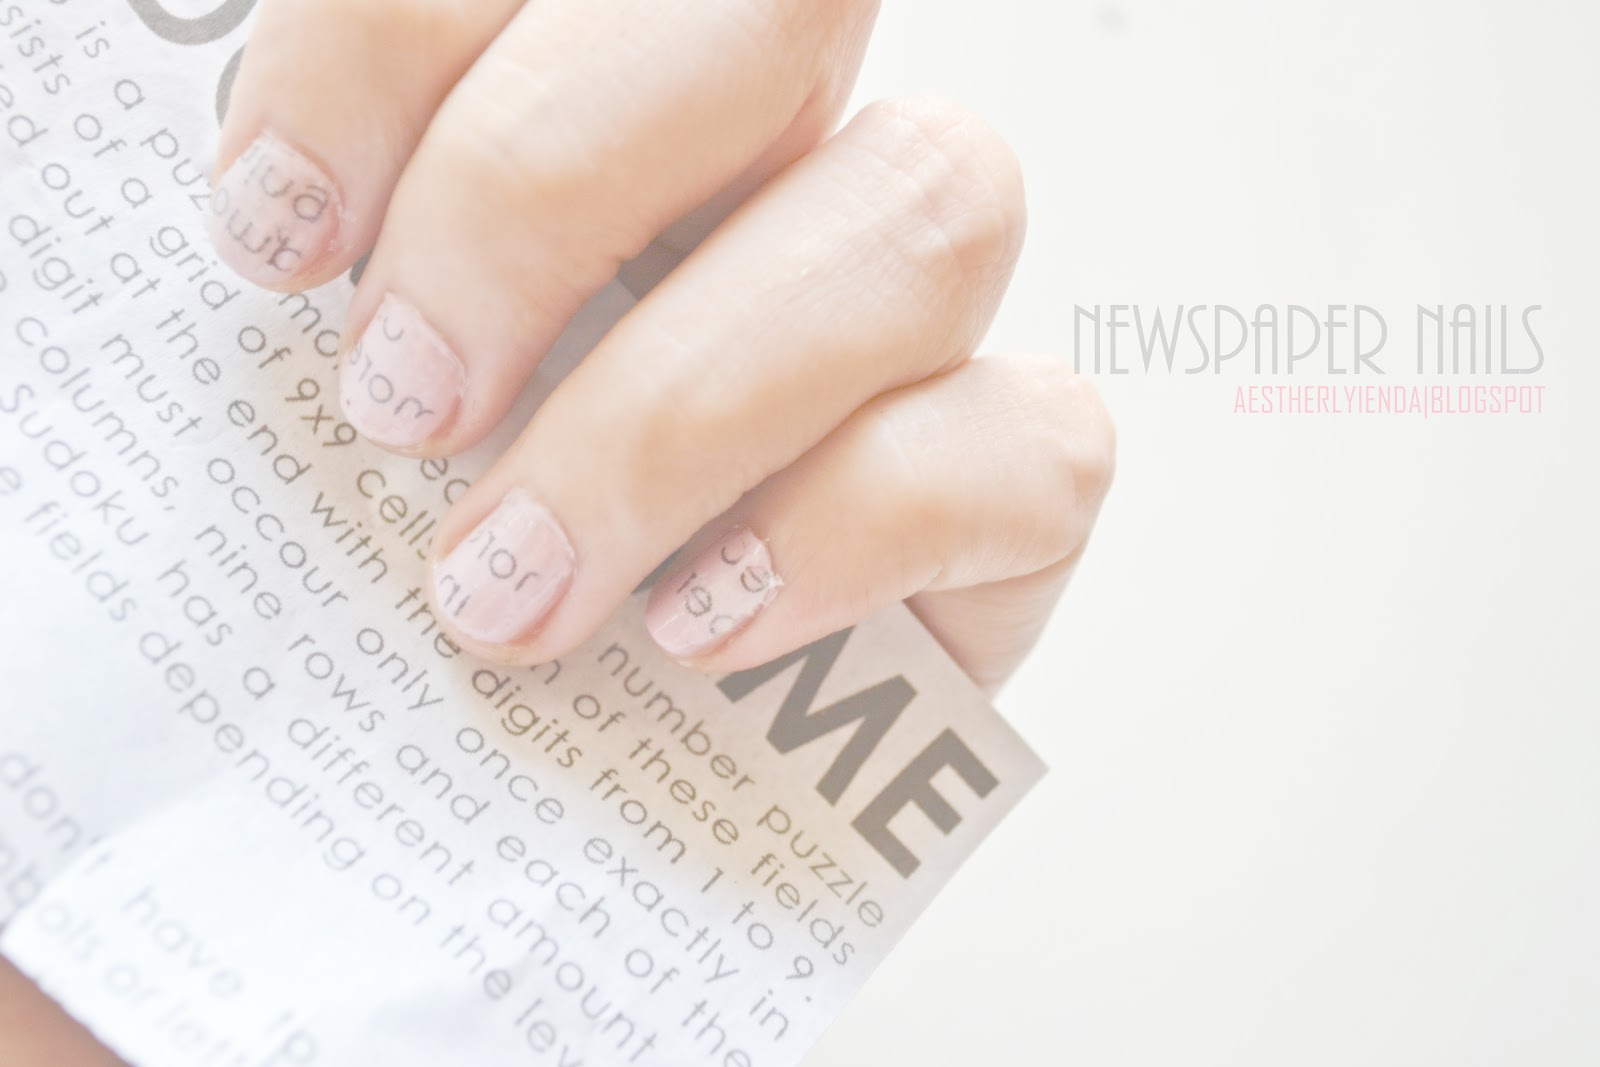 Newspaper Nails | aestherlyienda